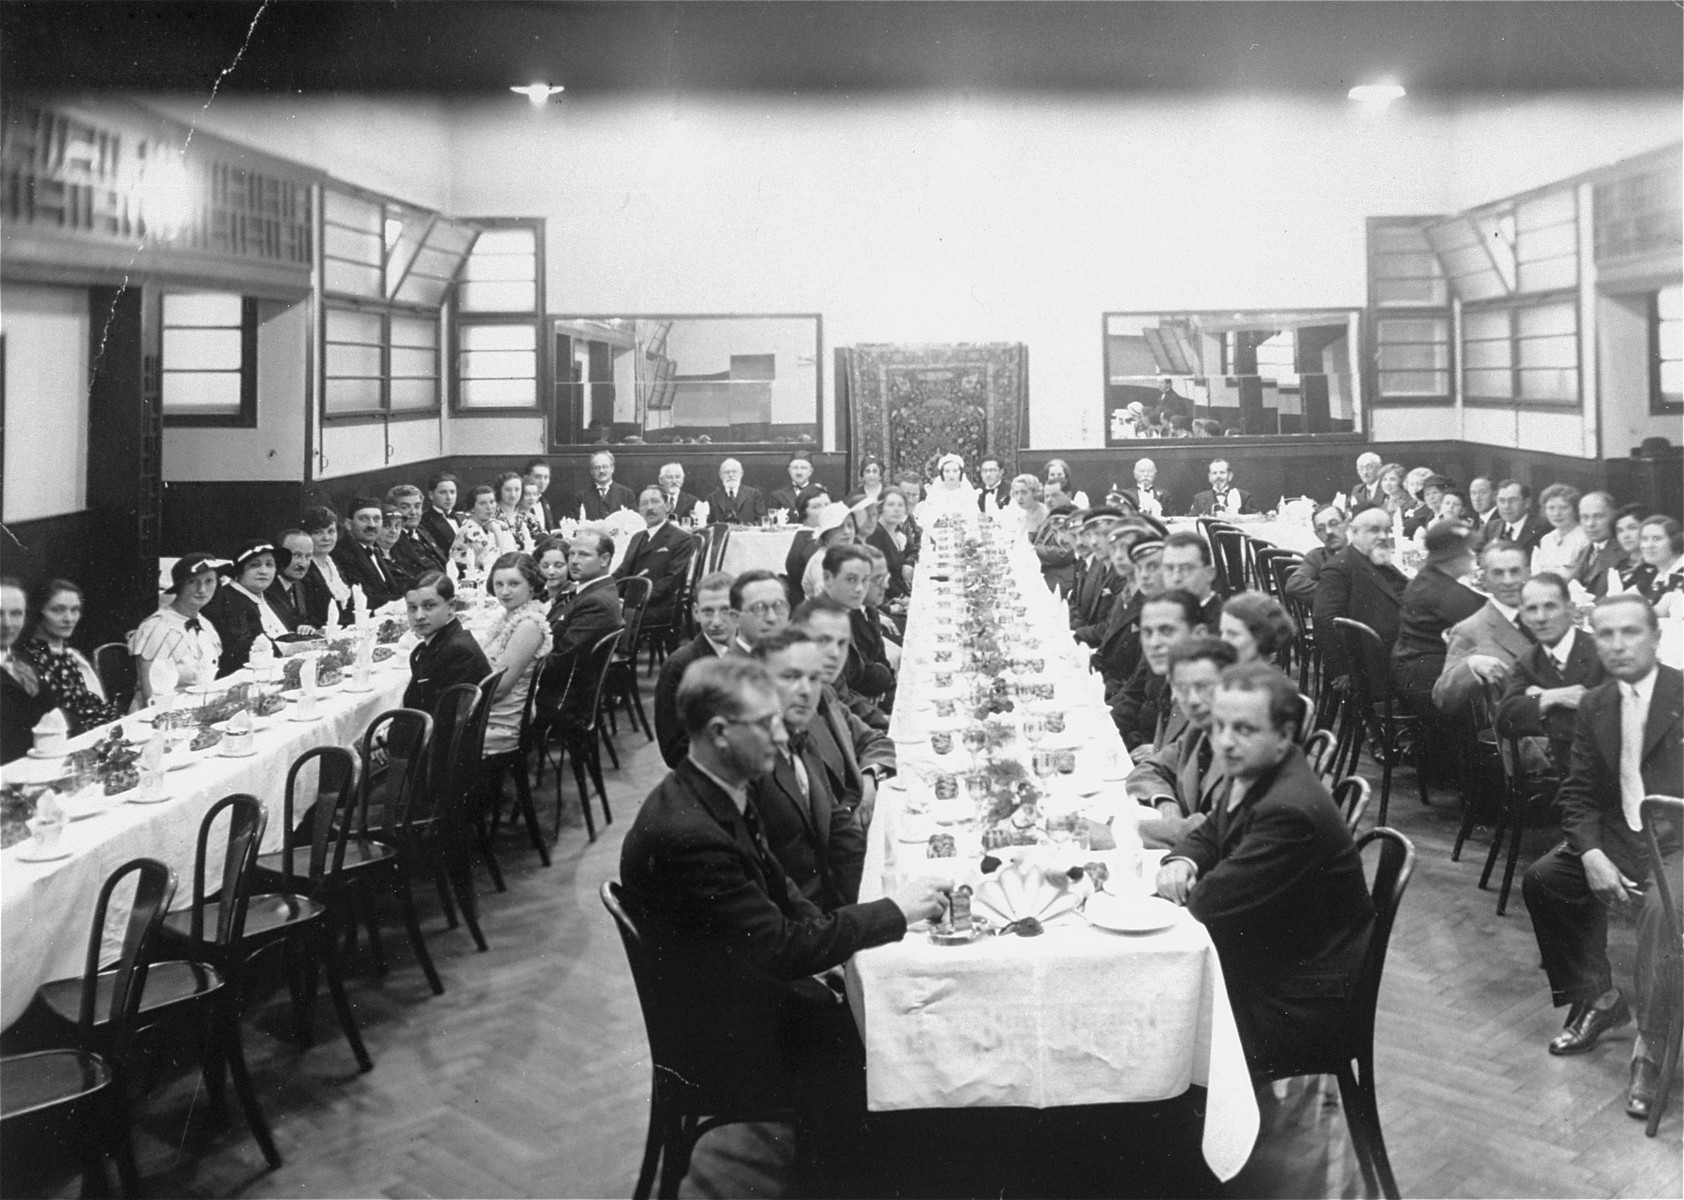 "The wedding reception of Ruth Kohn (b. 1916) and Ludwig Kleinberg at the Cafe Asherman (Beit Haam) in Prague.   Members of a Zionist student organization, the ""Barisia,"" identified by their distinctive caps, are seated on the right side of the center table.  Among those pictured, at the middle table on the right, is Jan Low,  the editor of the weekly paper Der Judenstaat in Prague."